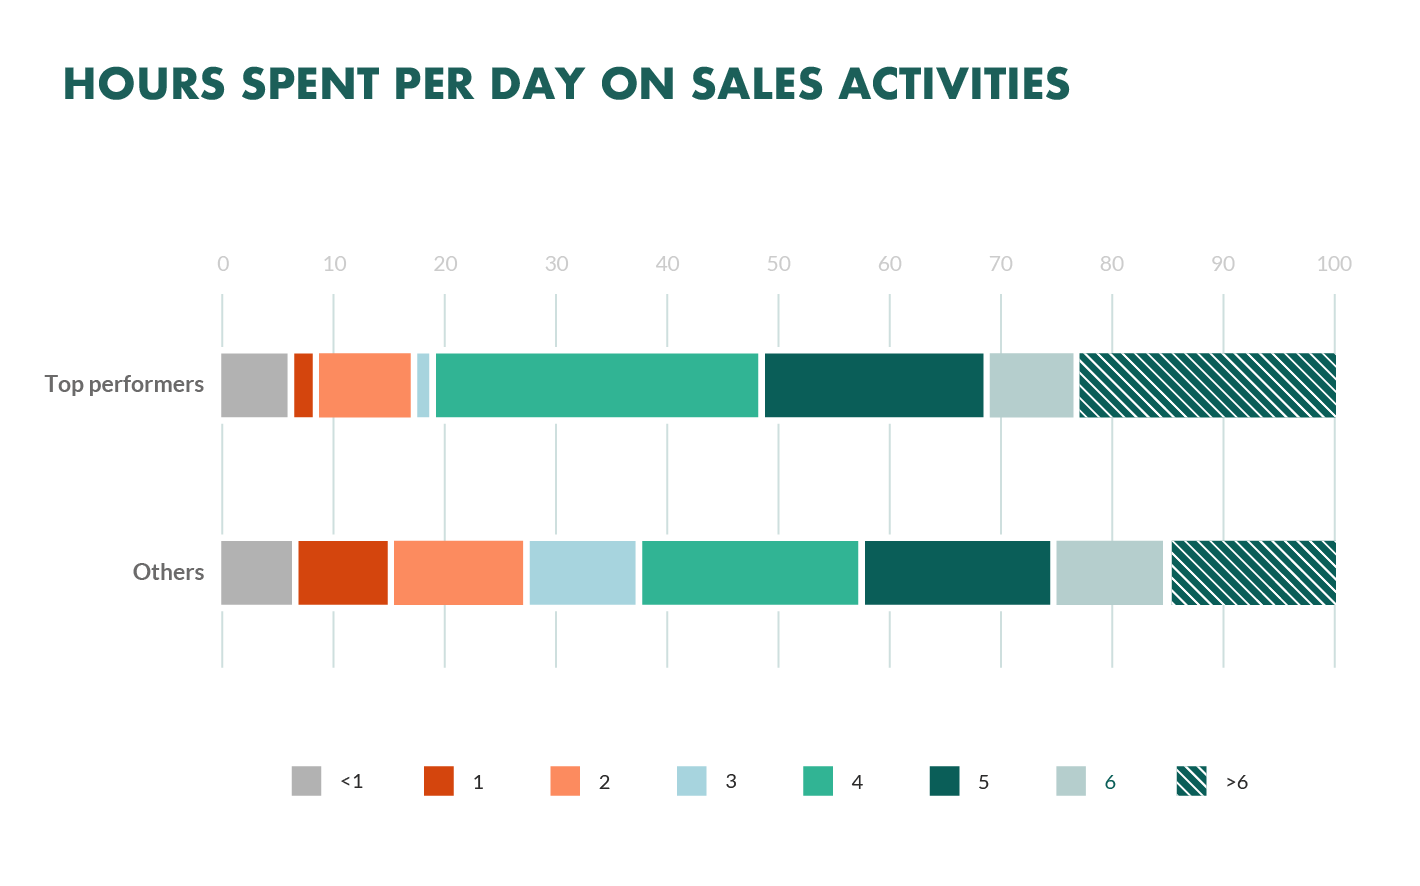 sales-activities-per-day.png